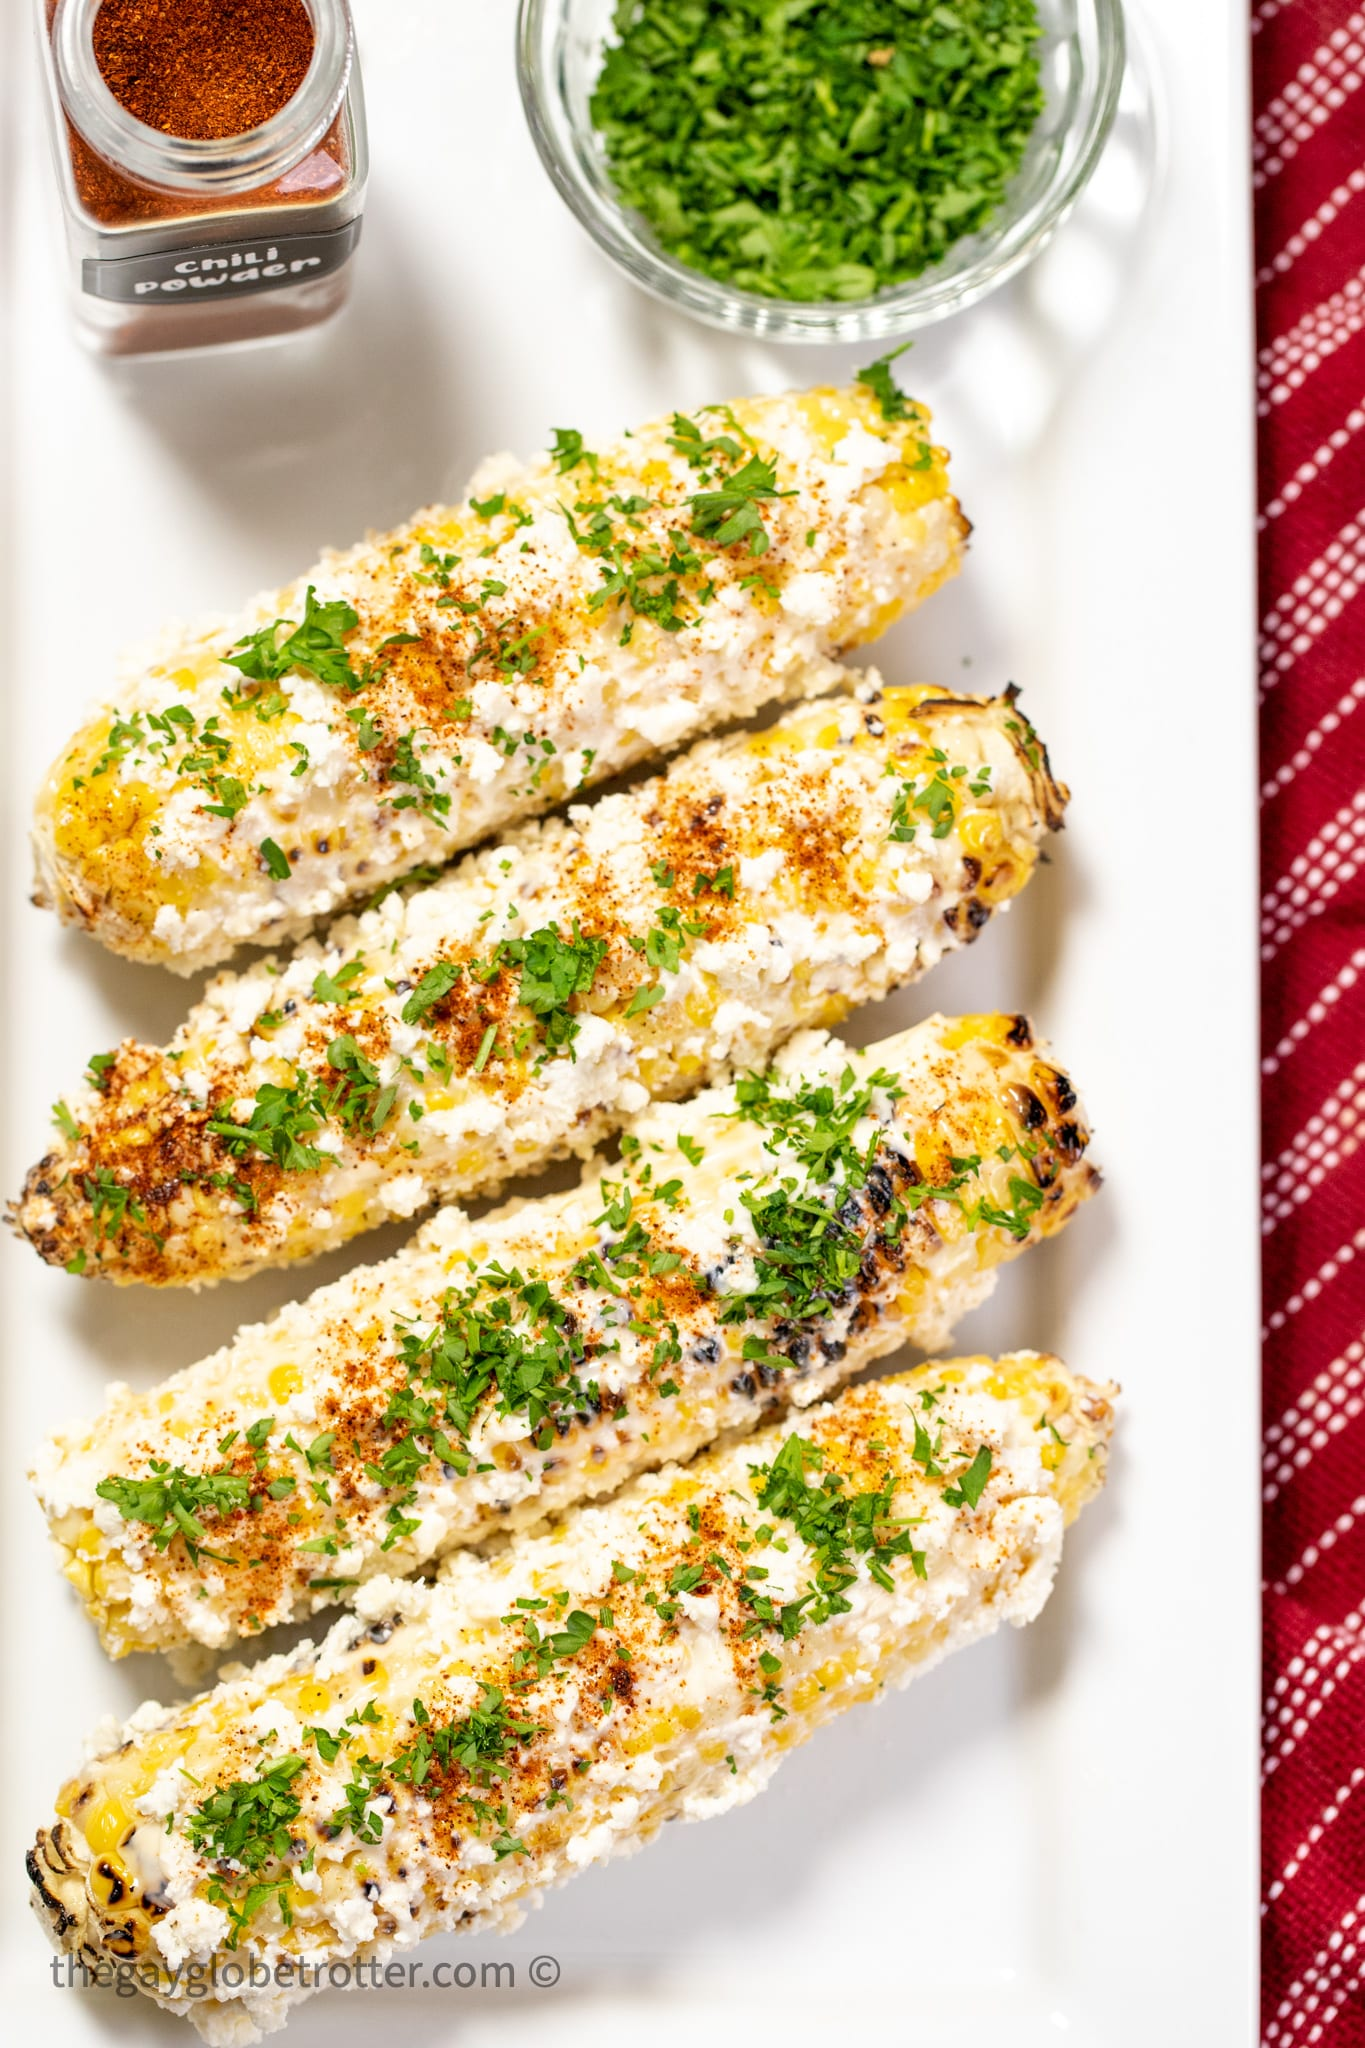 Mexican street corn on a plate with cilantro and chili powder.